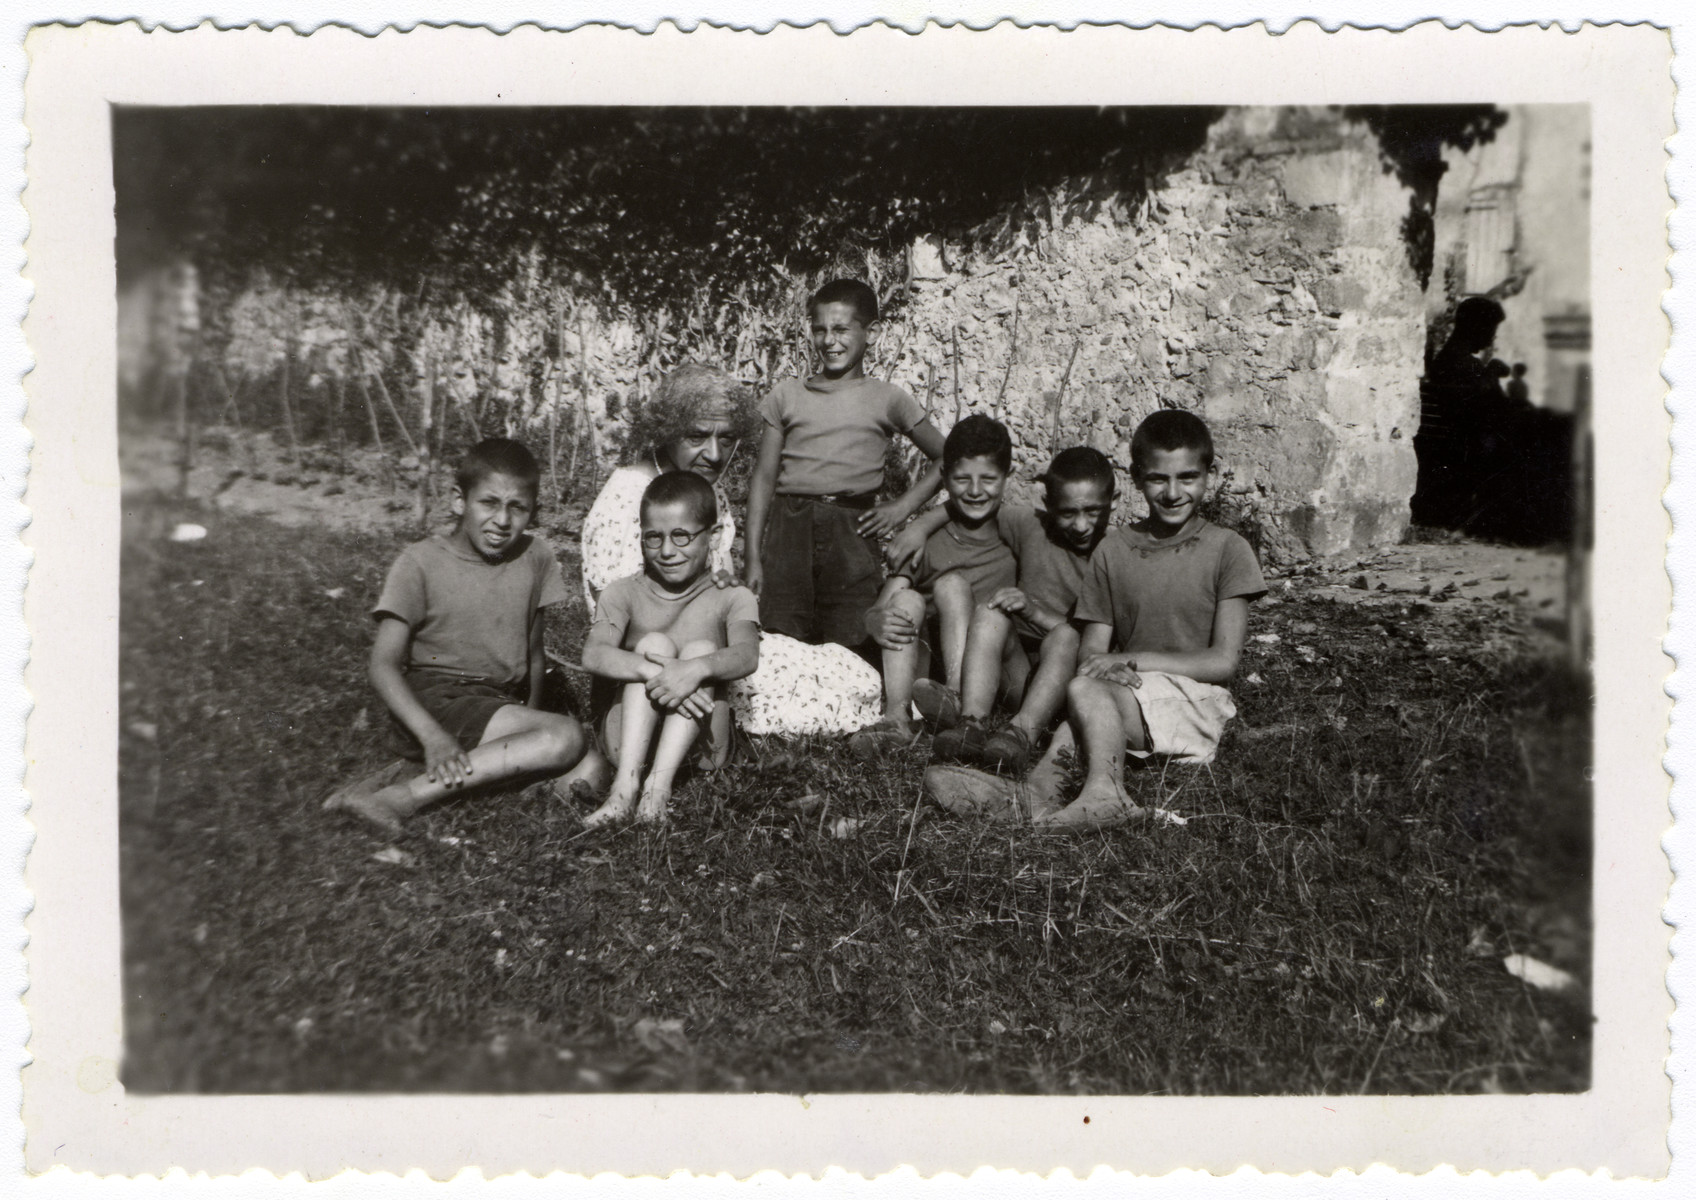 A group of children sit with their female guardian at the children's home Chateau de la Hille.   Pictured are the teacher Irene Frank is surrounded by, from left, Guy Haas, Joseph Findling (?), Manfred Templer (?), Paul Schlesinger, Gerhard Eckmann and George Herz. Eckmann was deported, survived Auschwitz and was murdered in Lieberose, Germany, in early 1945.